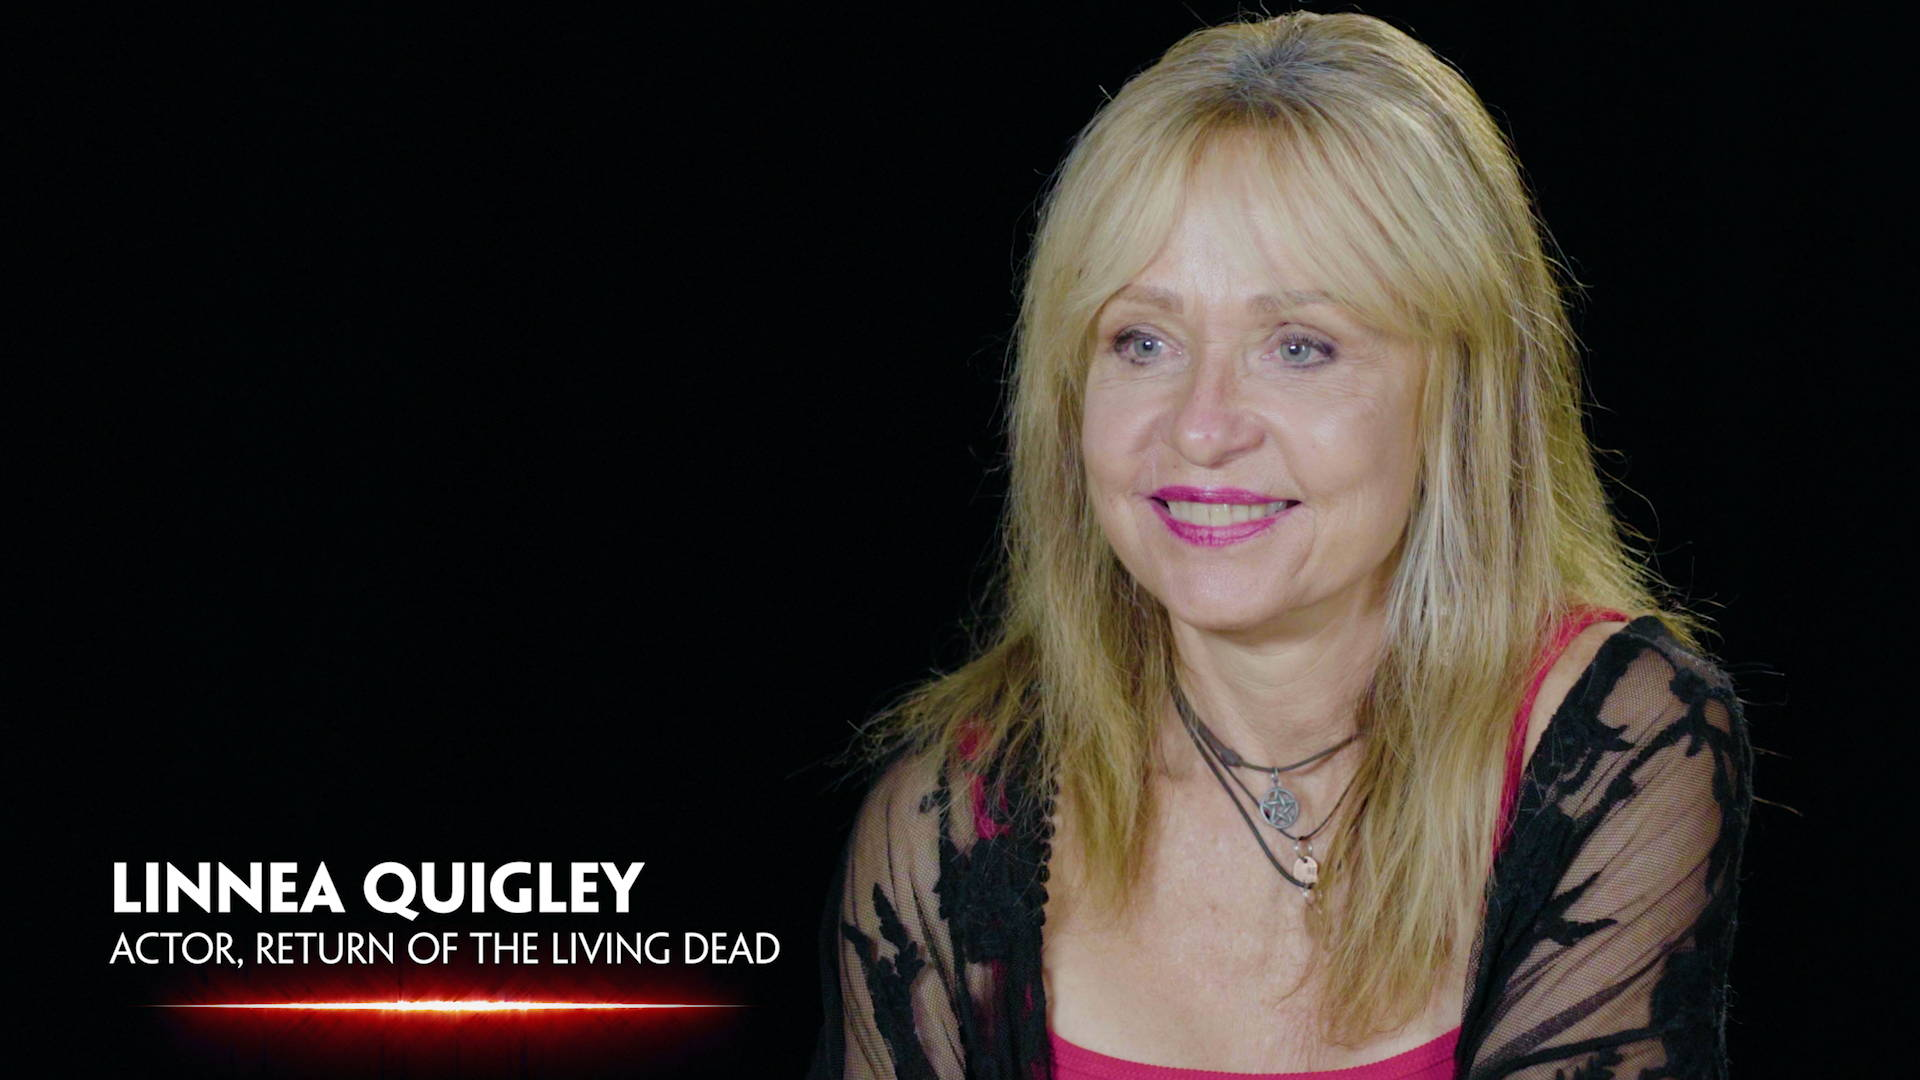 In Search of Darkness Part II: Linnea Quigley interview